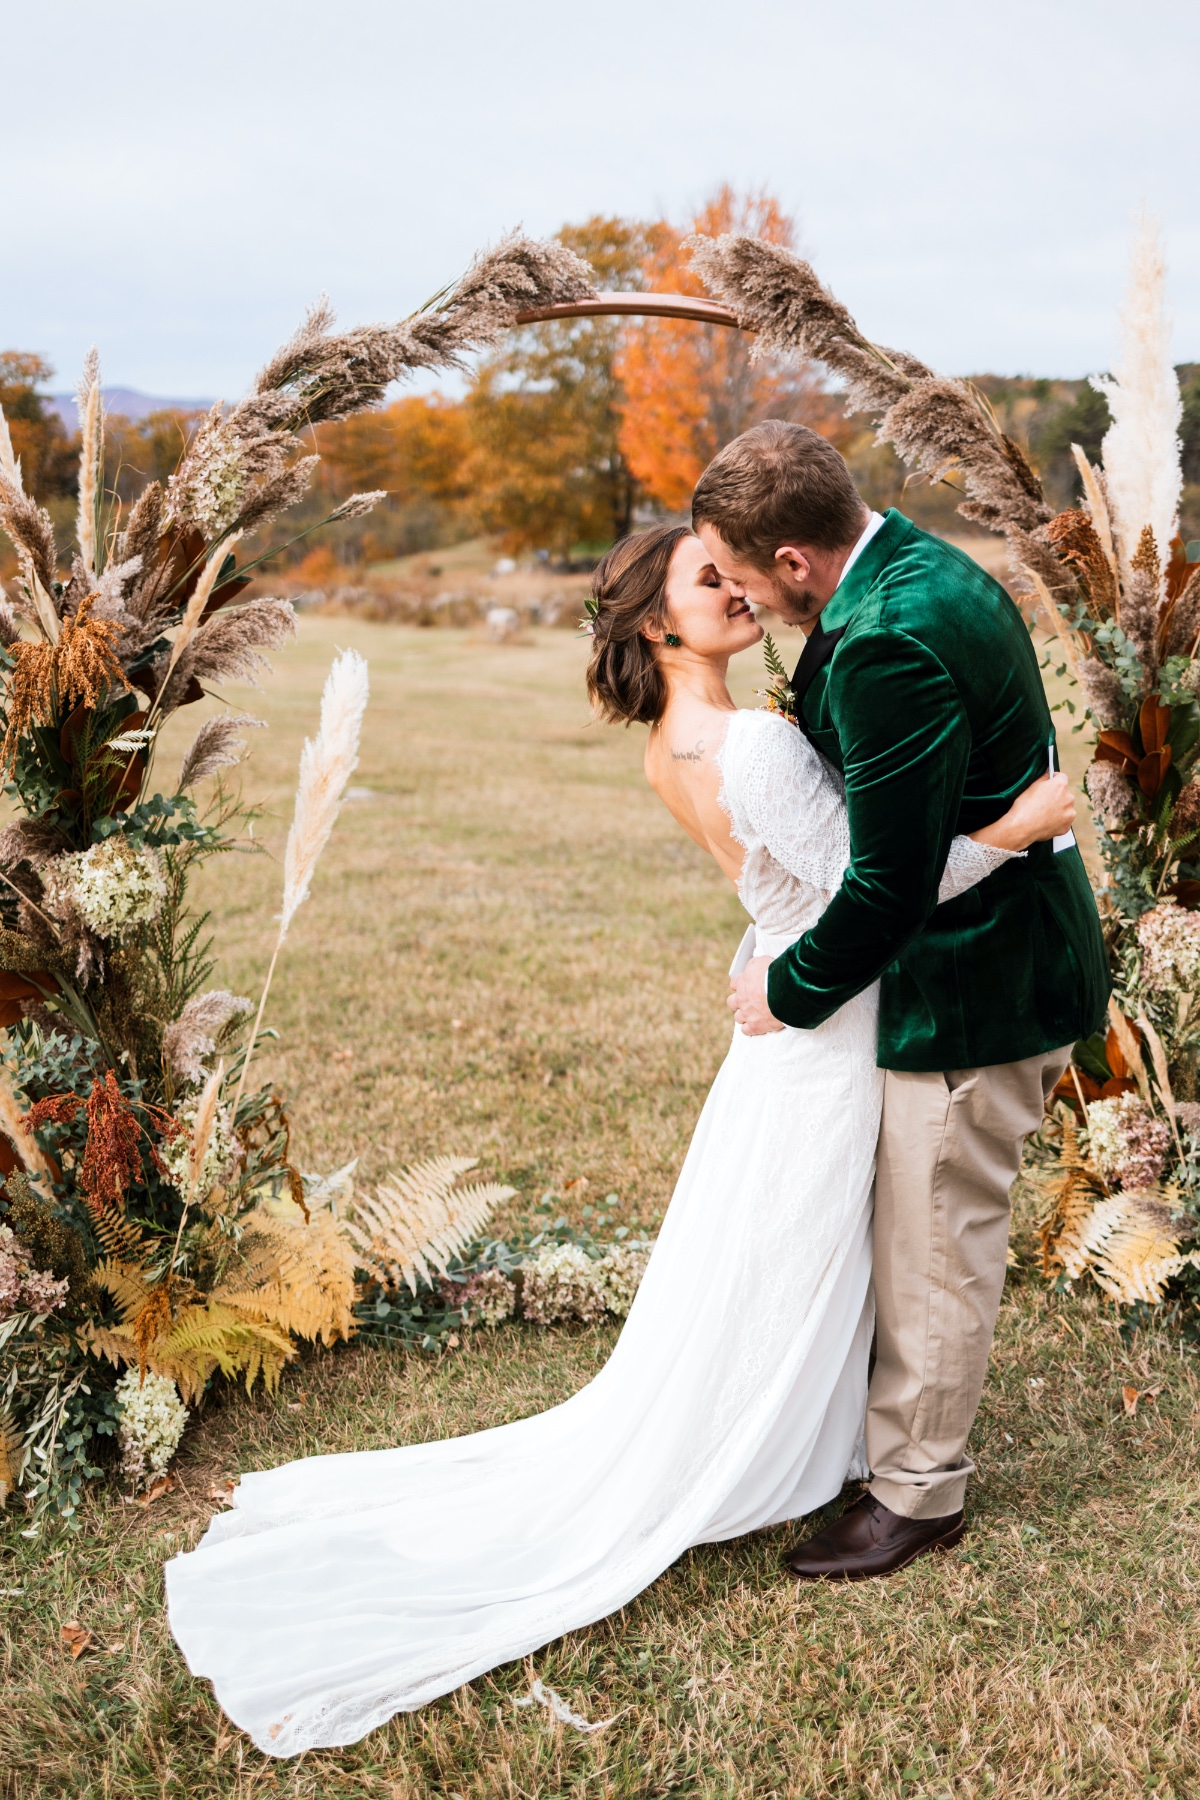 copper circle wedding backdrop with pampas grass